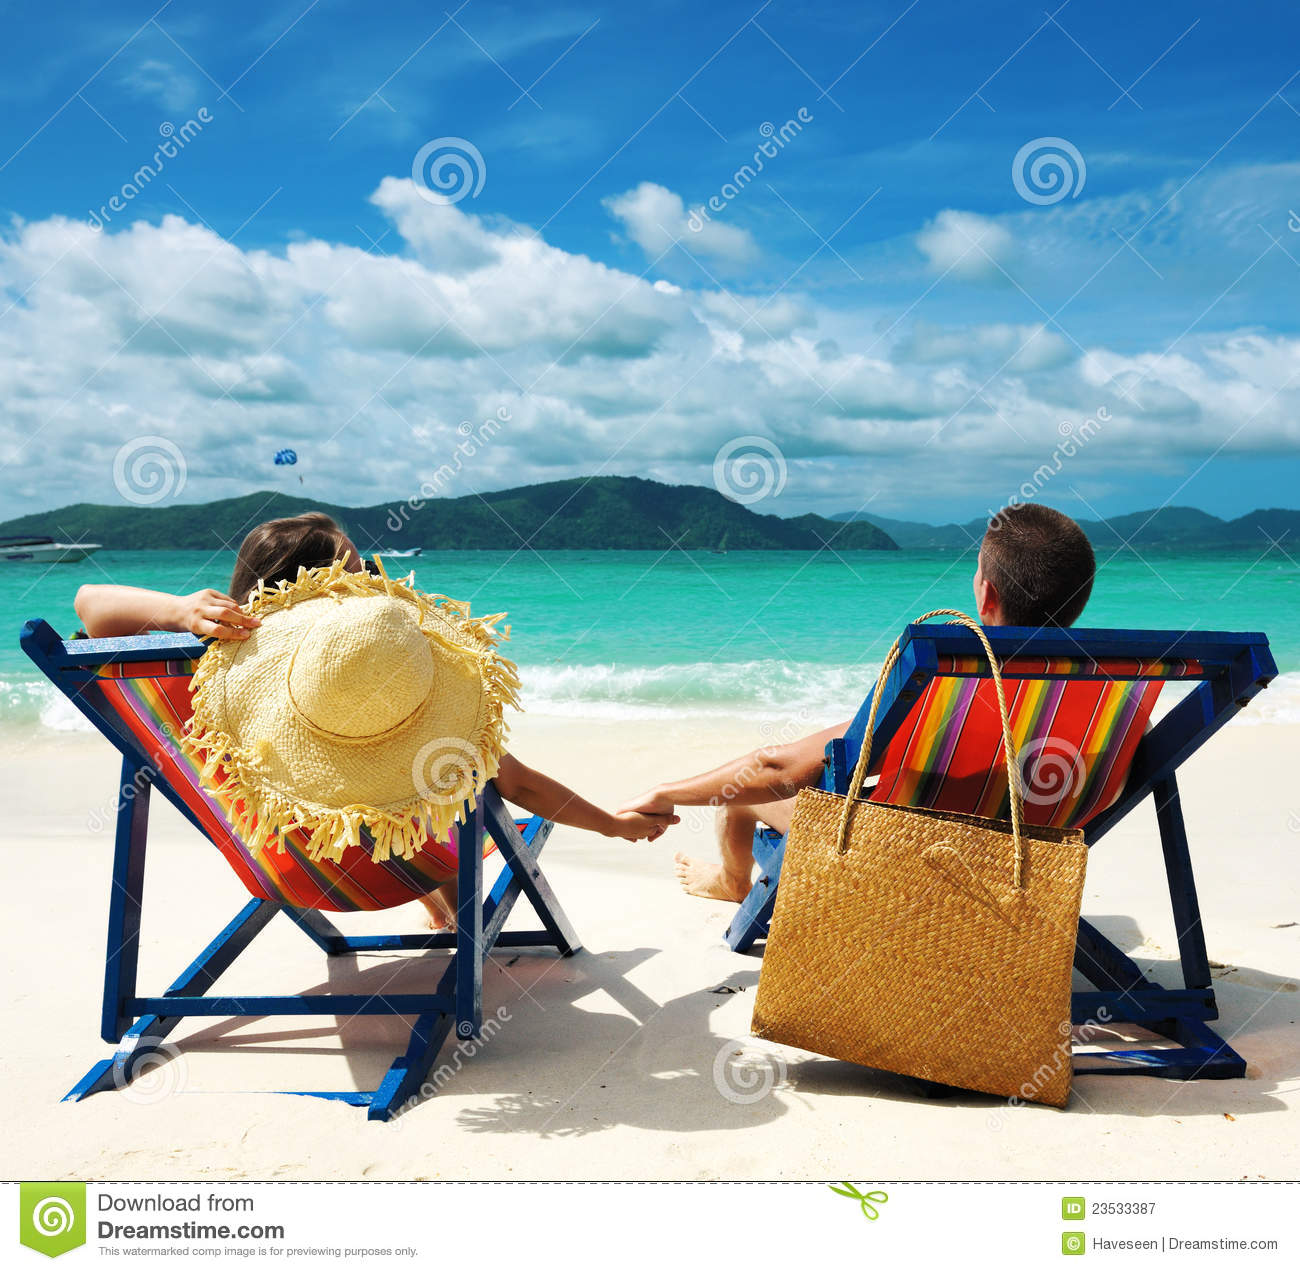 Couple At The Beach Stock Image Image Of Caucasian: Couple On A Beach Stock Image. Image Of Tanned, Remote